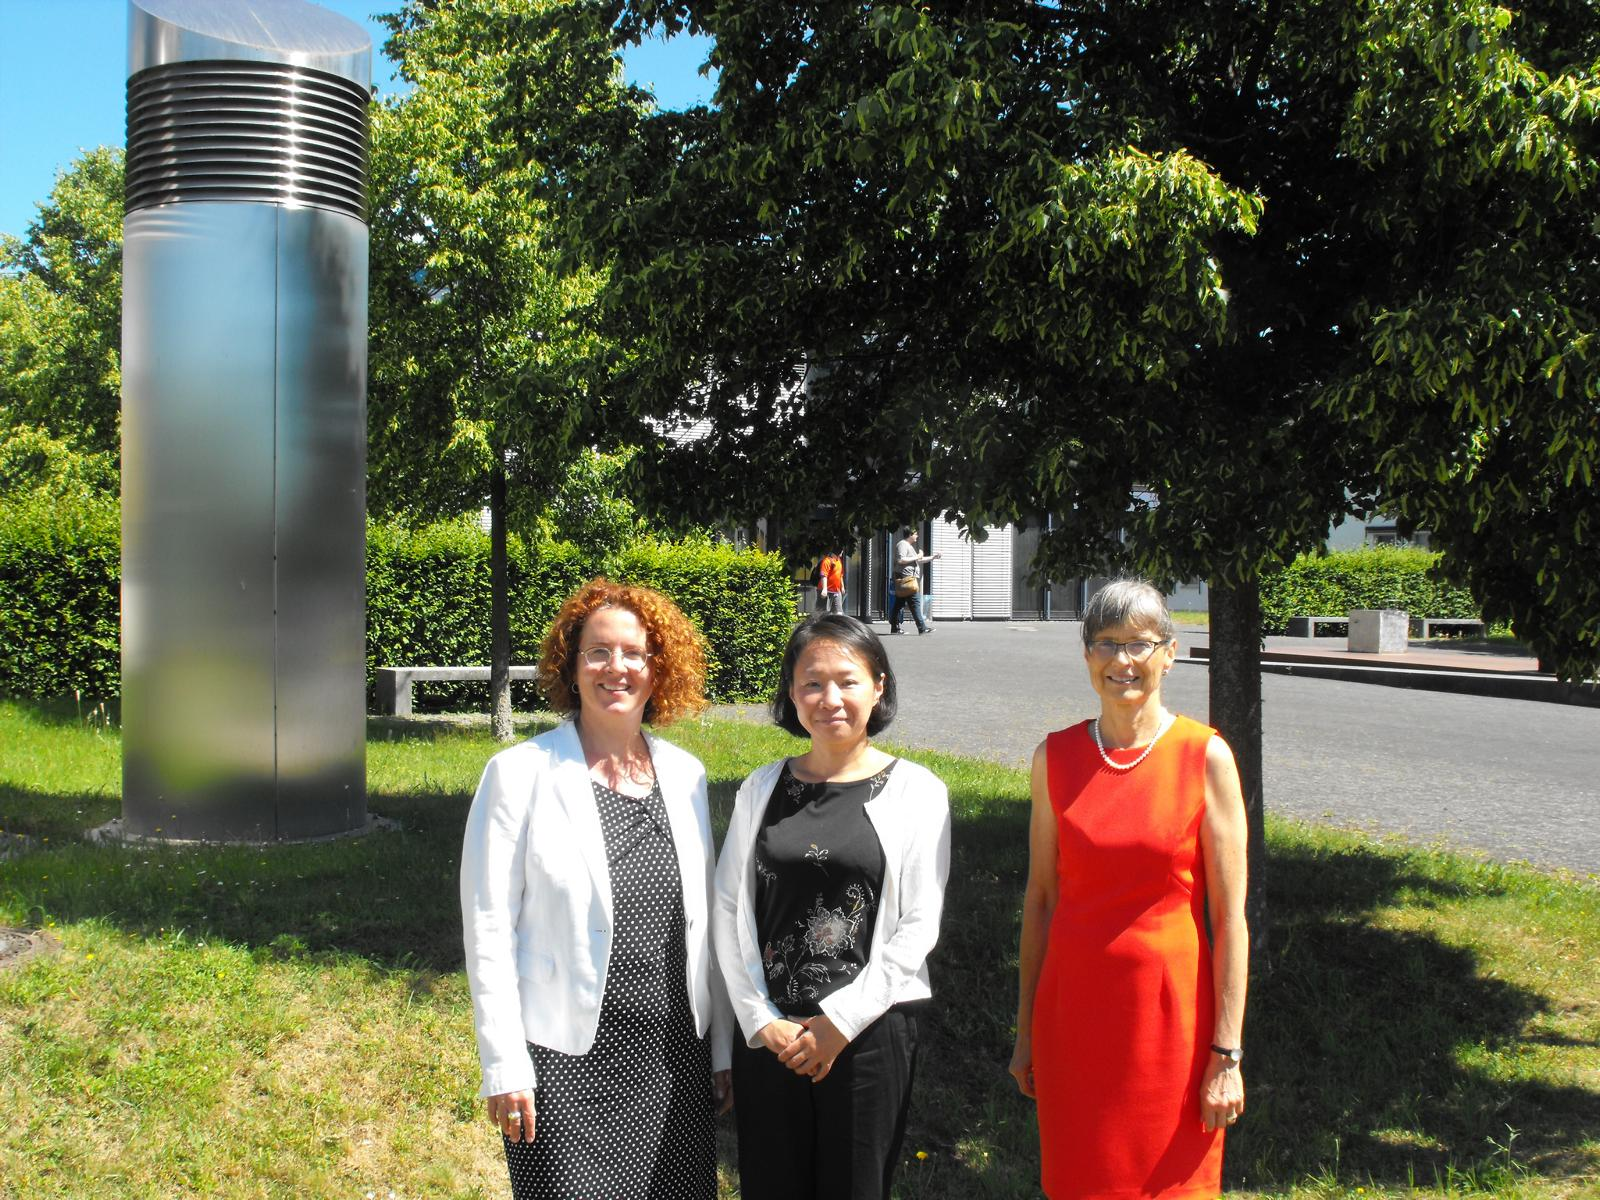 Ruth Boekle, Yumiko Soulier and Barbara Jörg are impressed by the Environmental Campus.